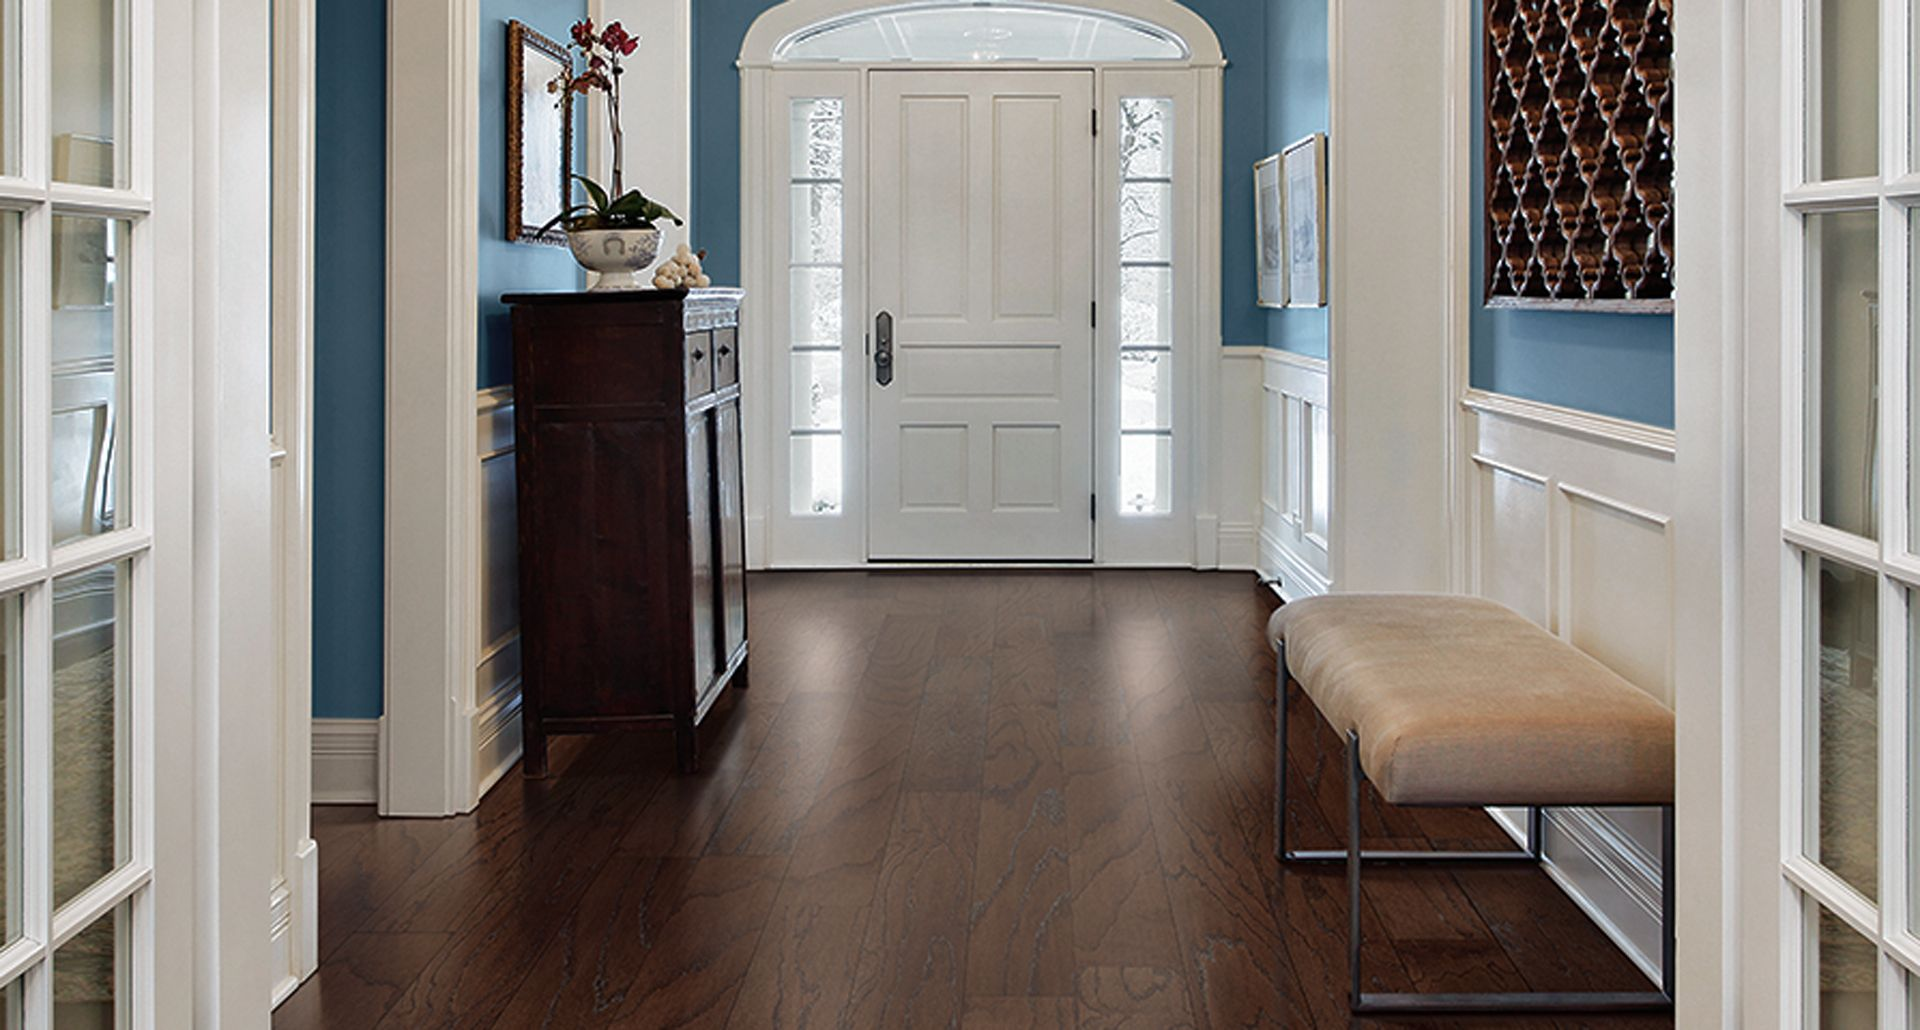 Chocolate Oak PERGO Max     Engineered Hardwood Flooring   PERGO     Chocolate Oak PERGO Max     Engineered Hardwood Flooring   PERGO     Flooring